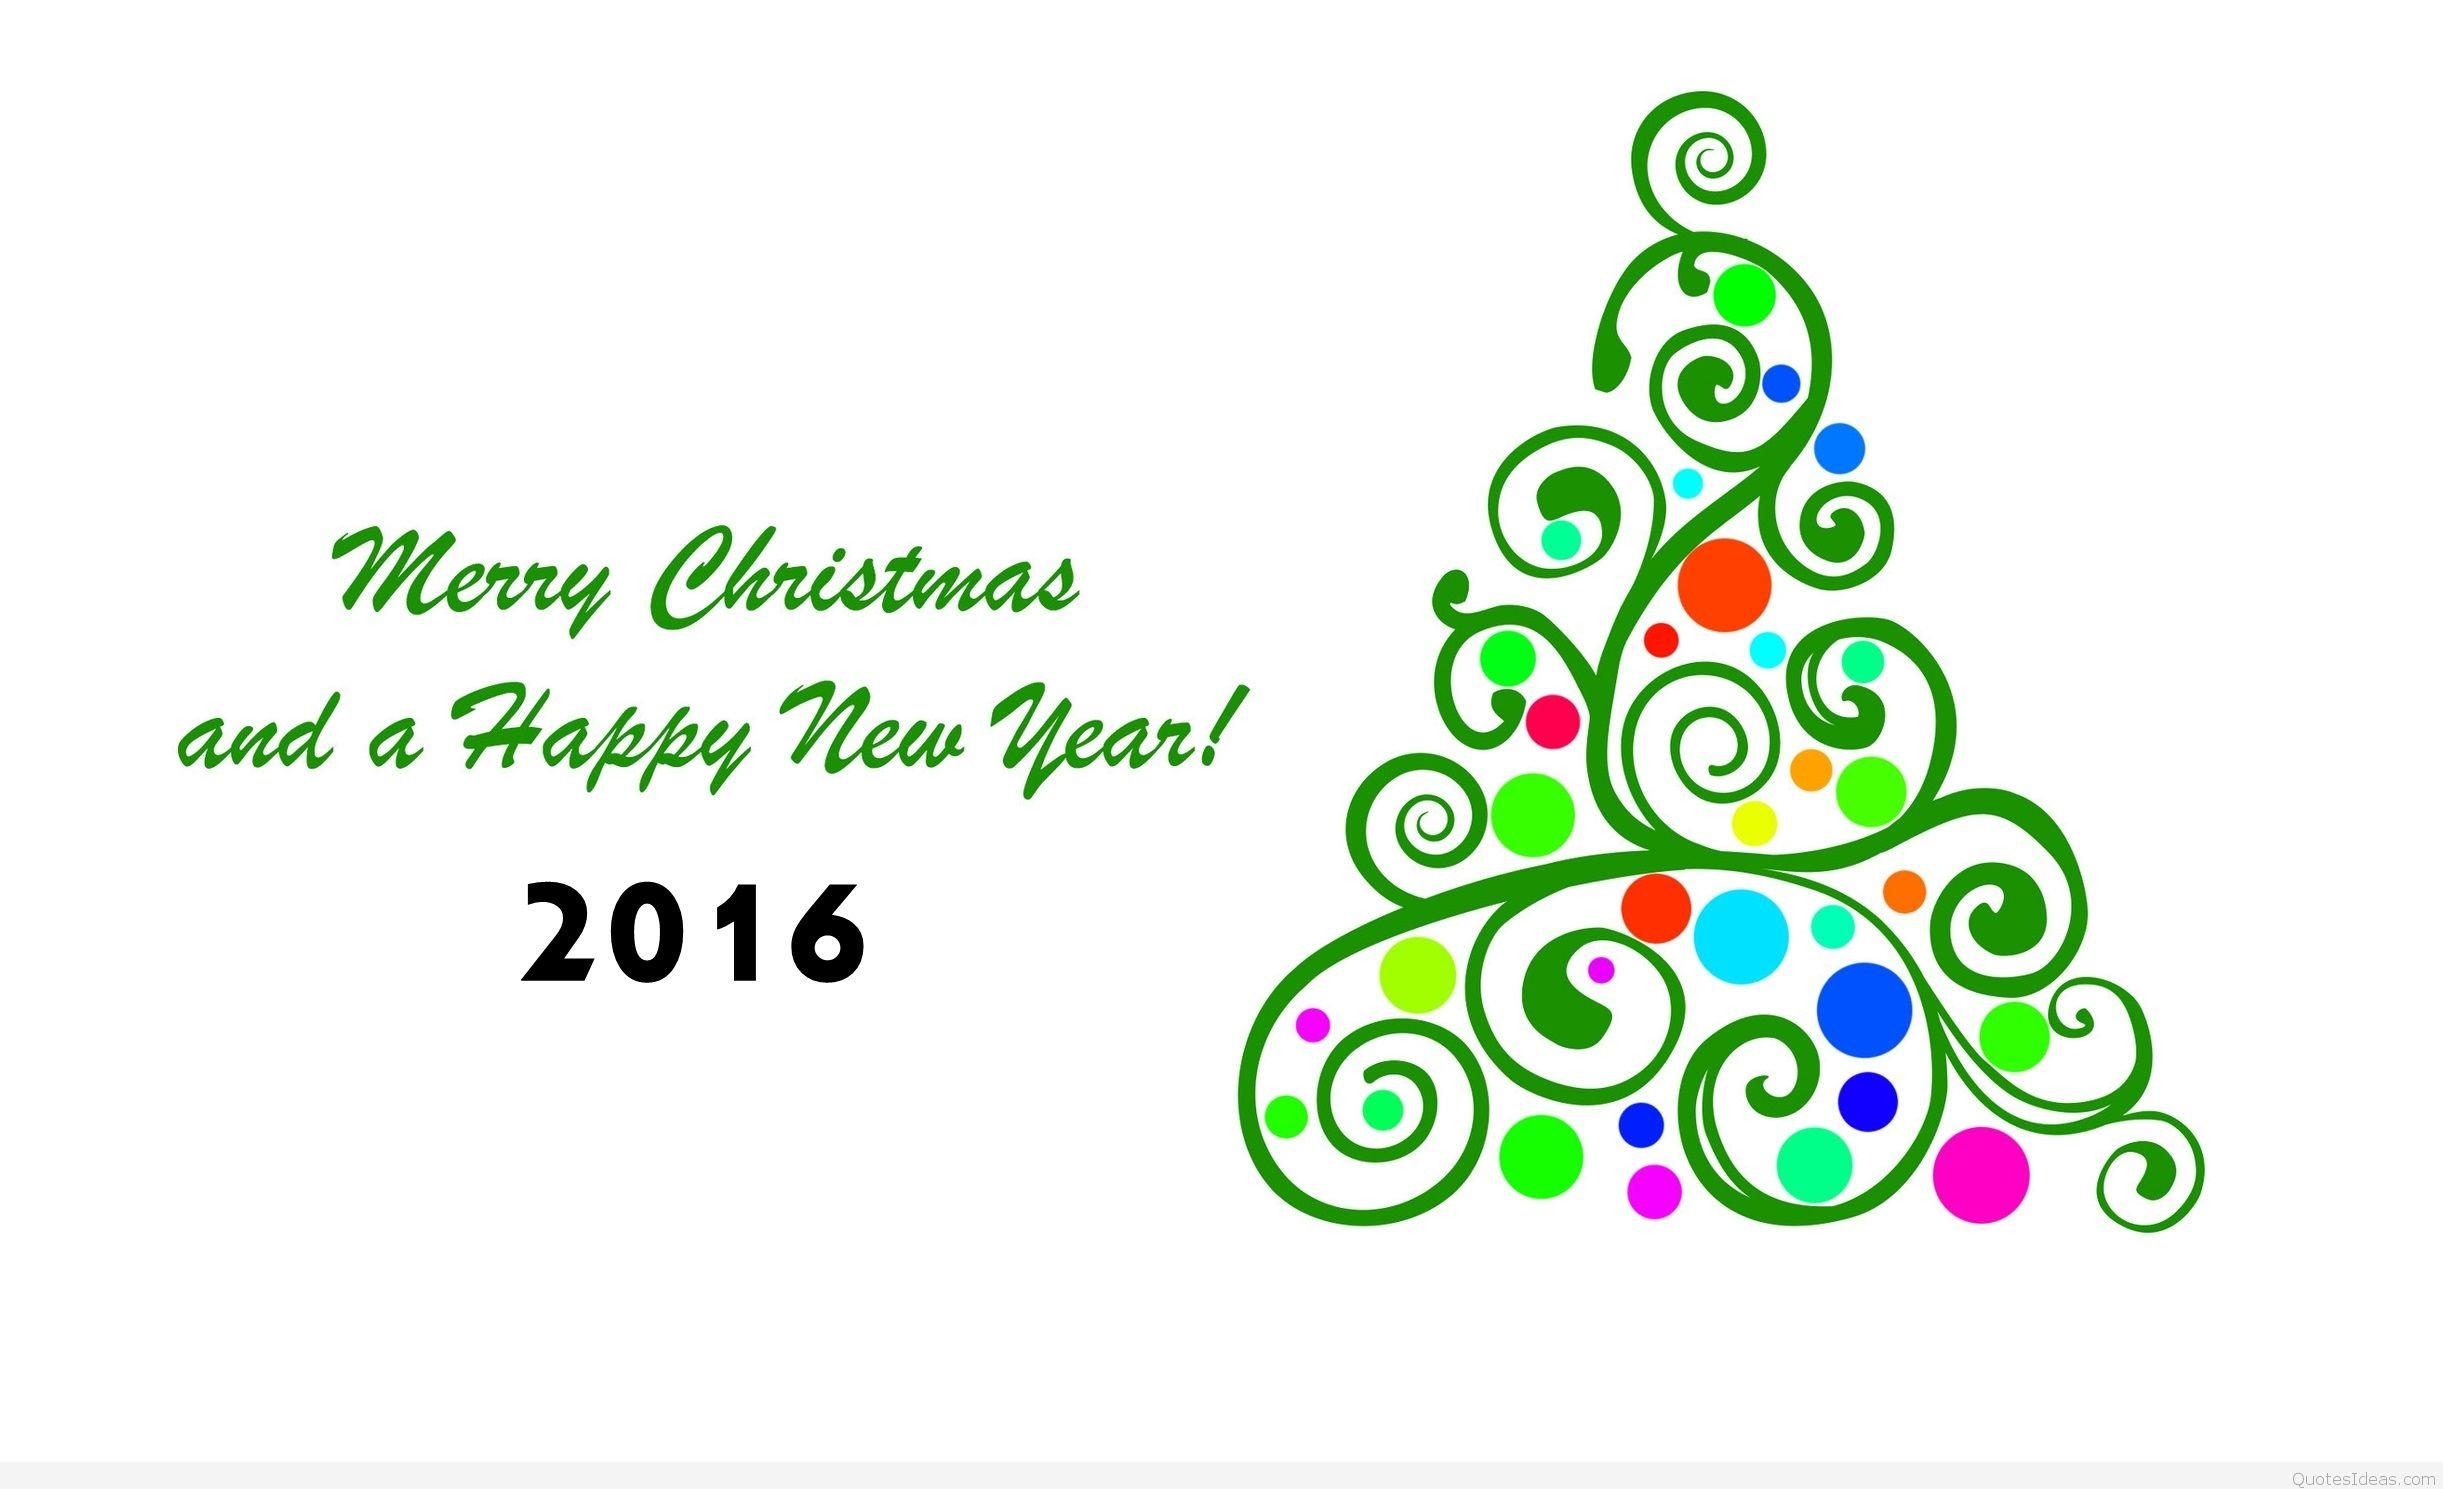 2016 NEW YEAR holiday seasonal christmas wallpaper.